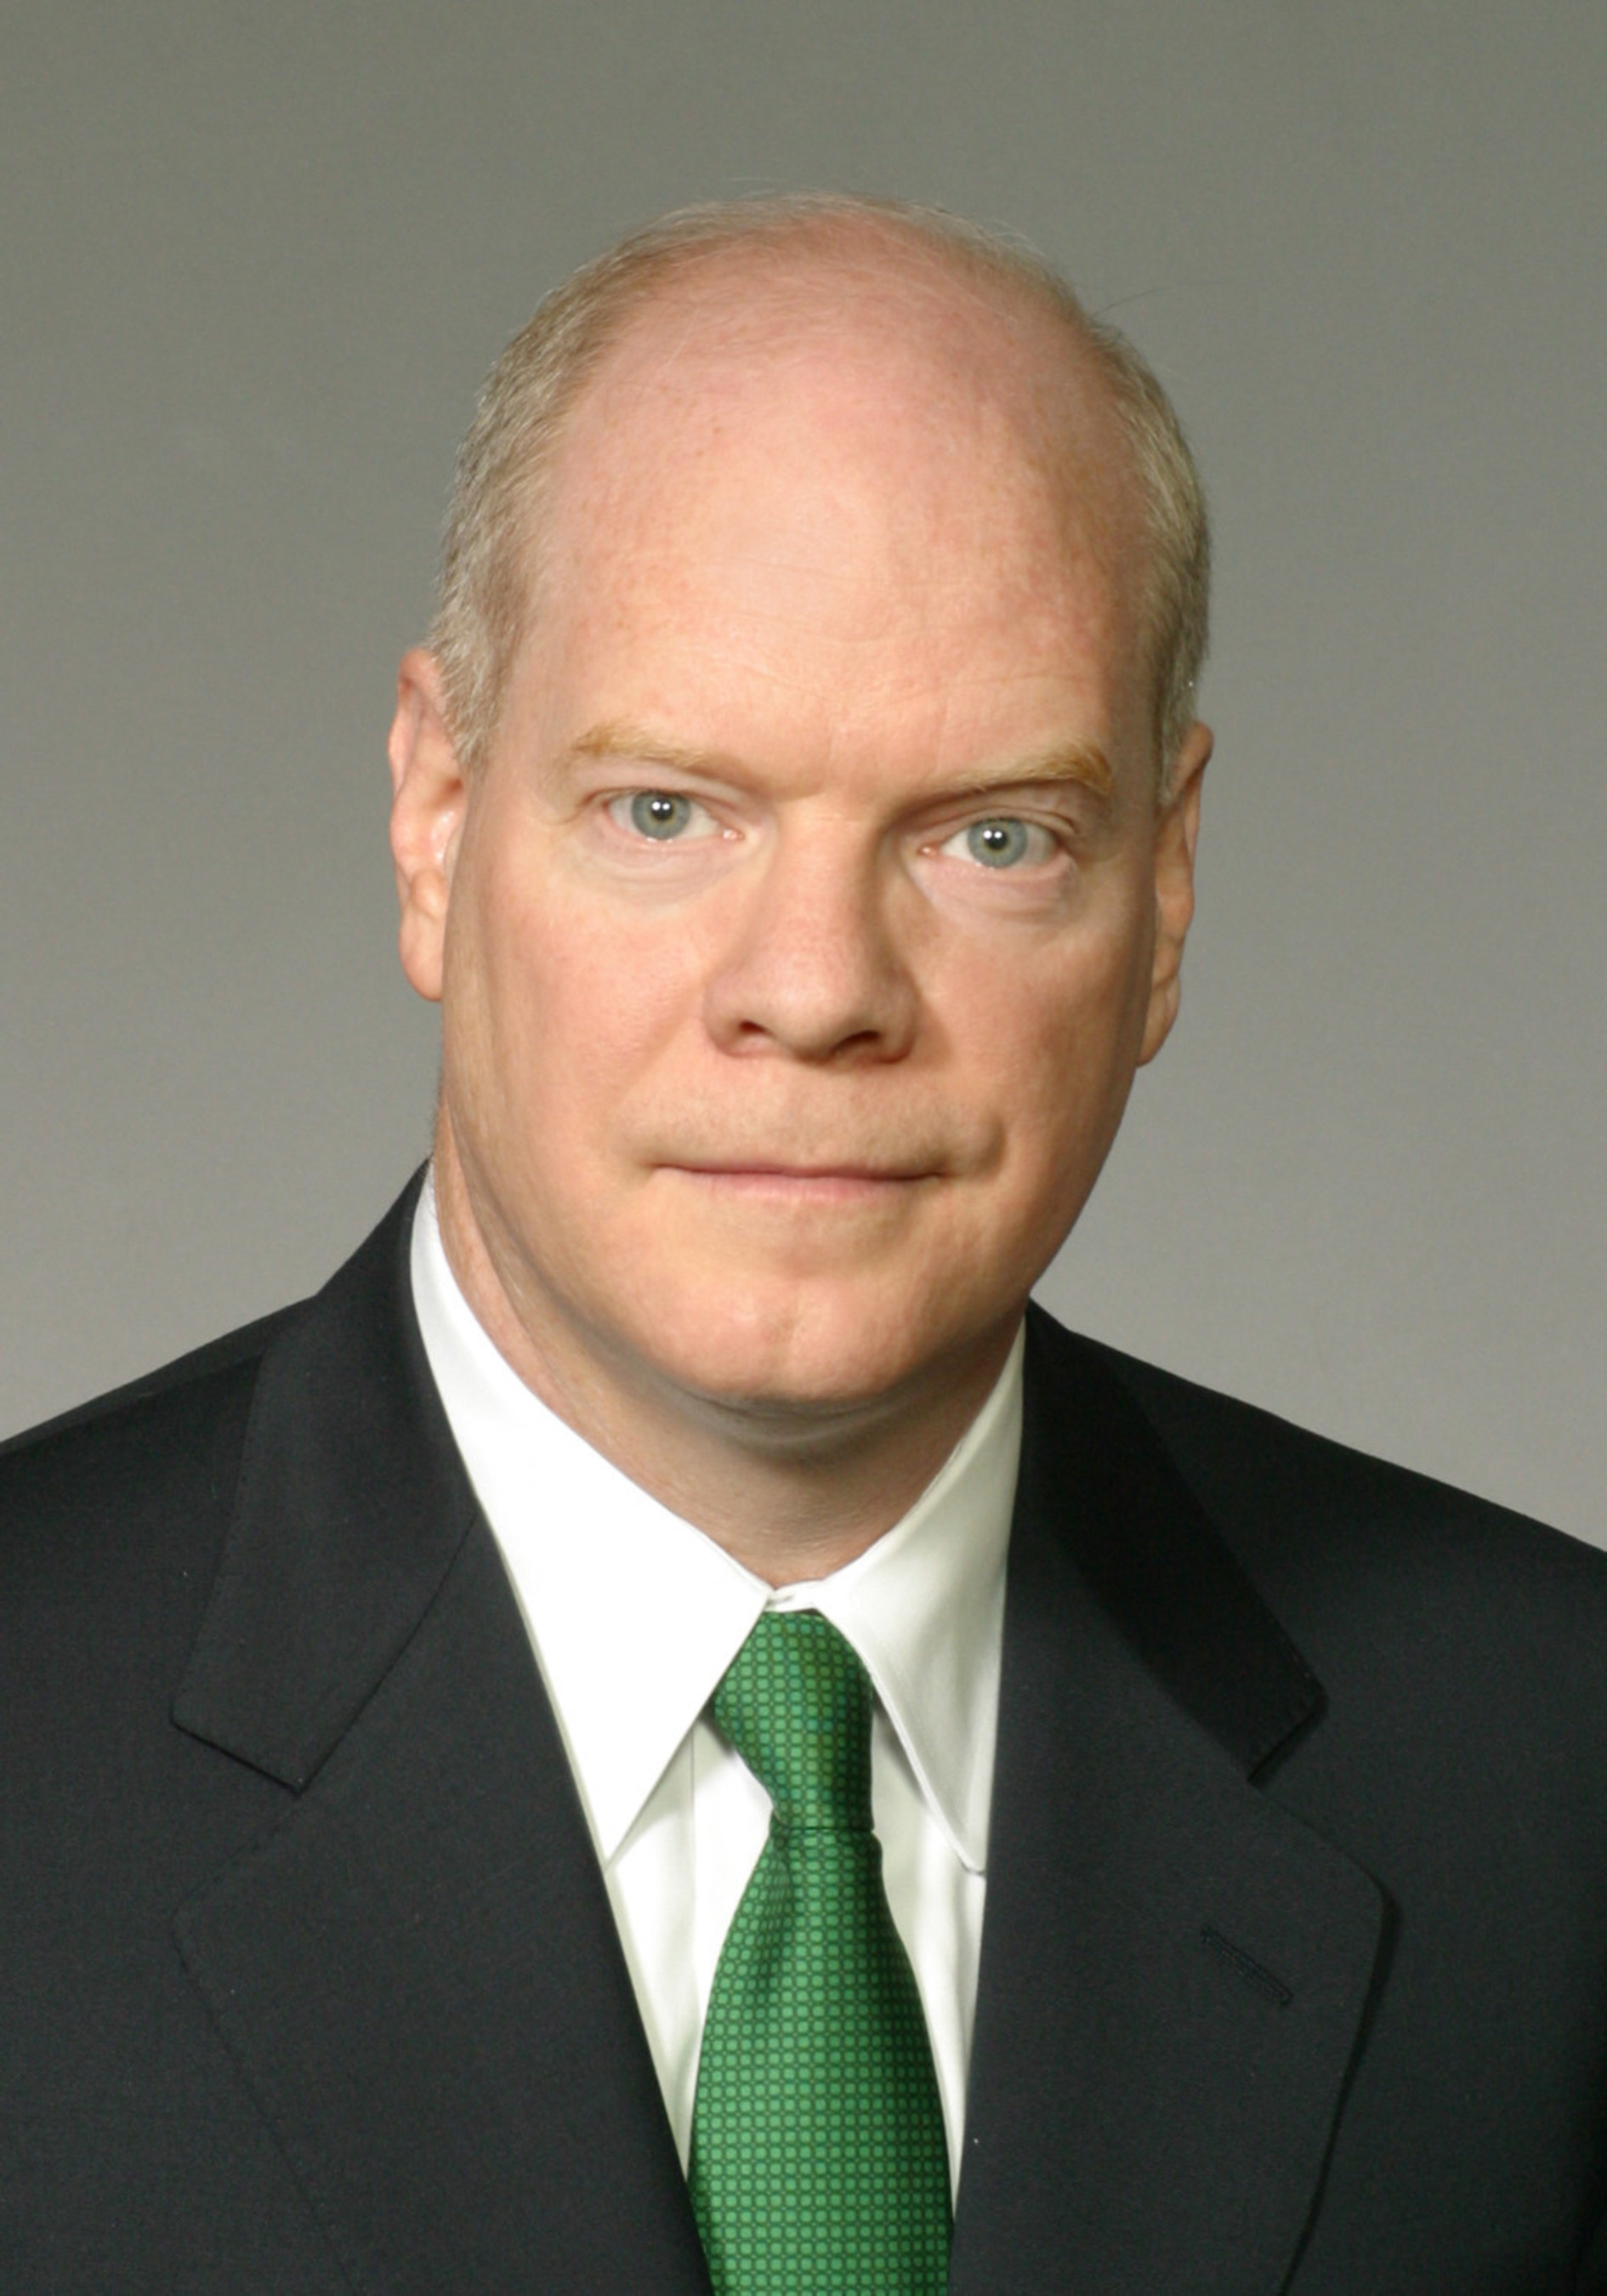 Michael J. Mack. Jr. will retire as Group President, John Deere Financial Services, Global Human Resources and Public Affairs at Deere & Company, effective November 1.